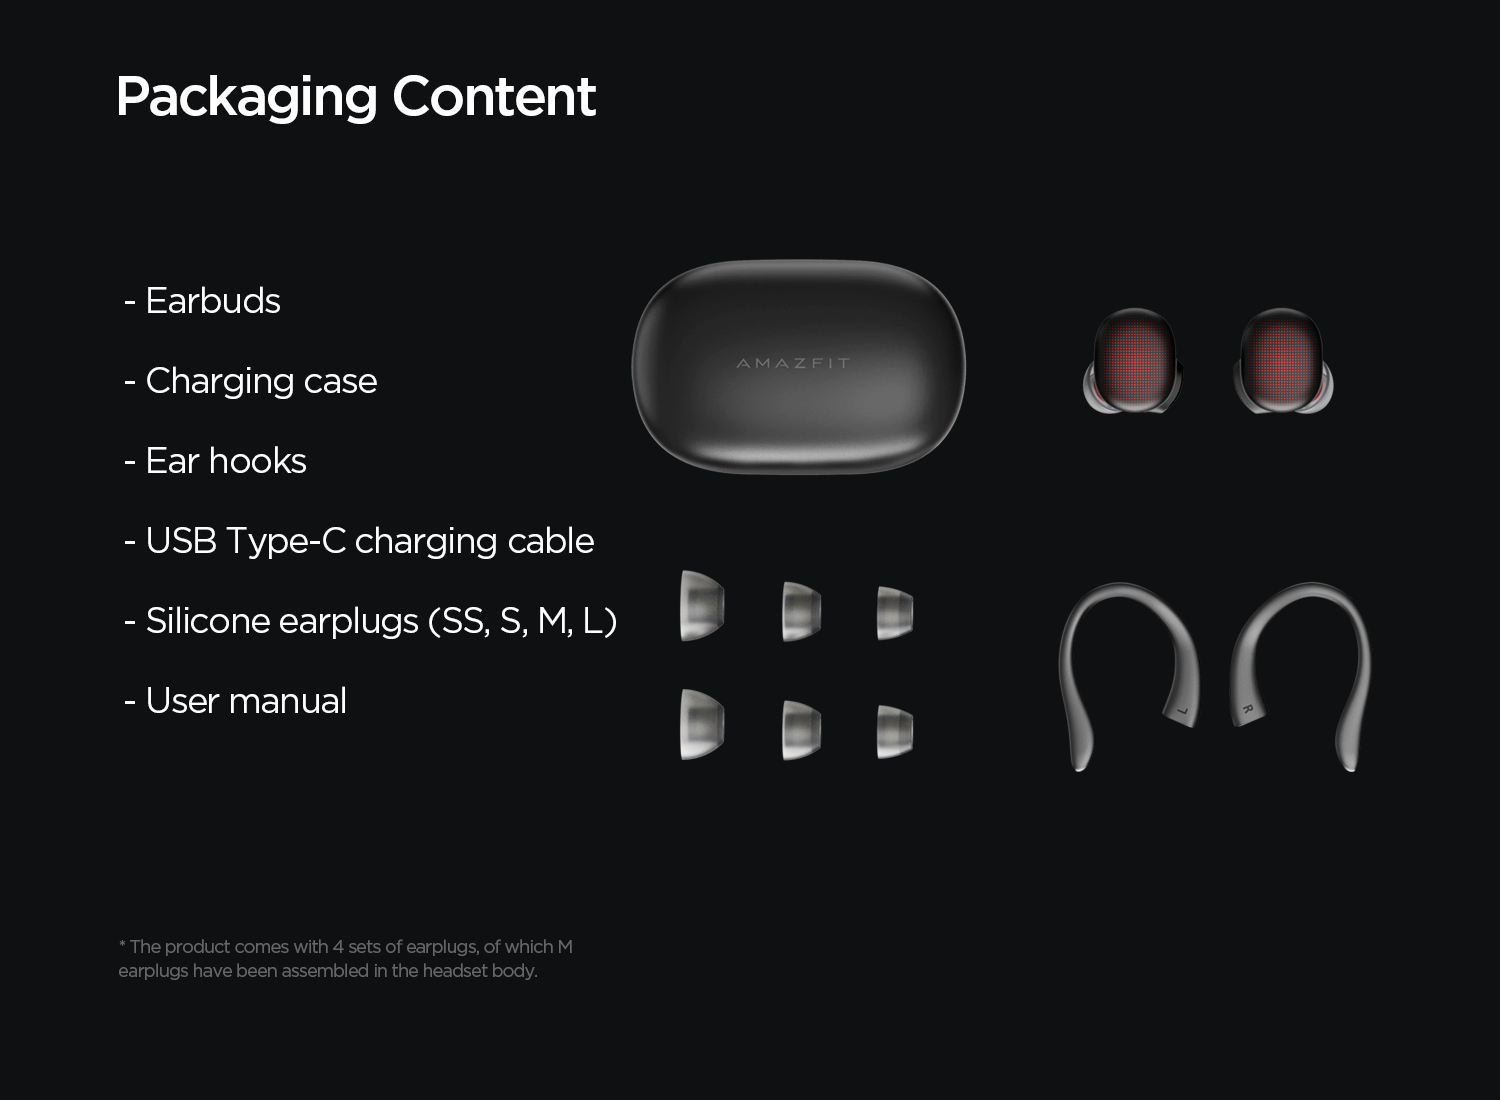 packaging content